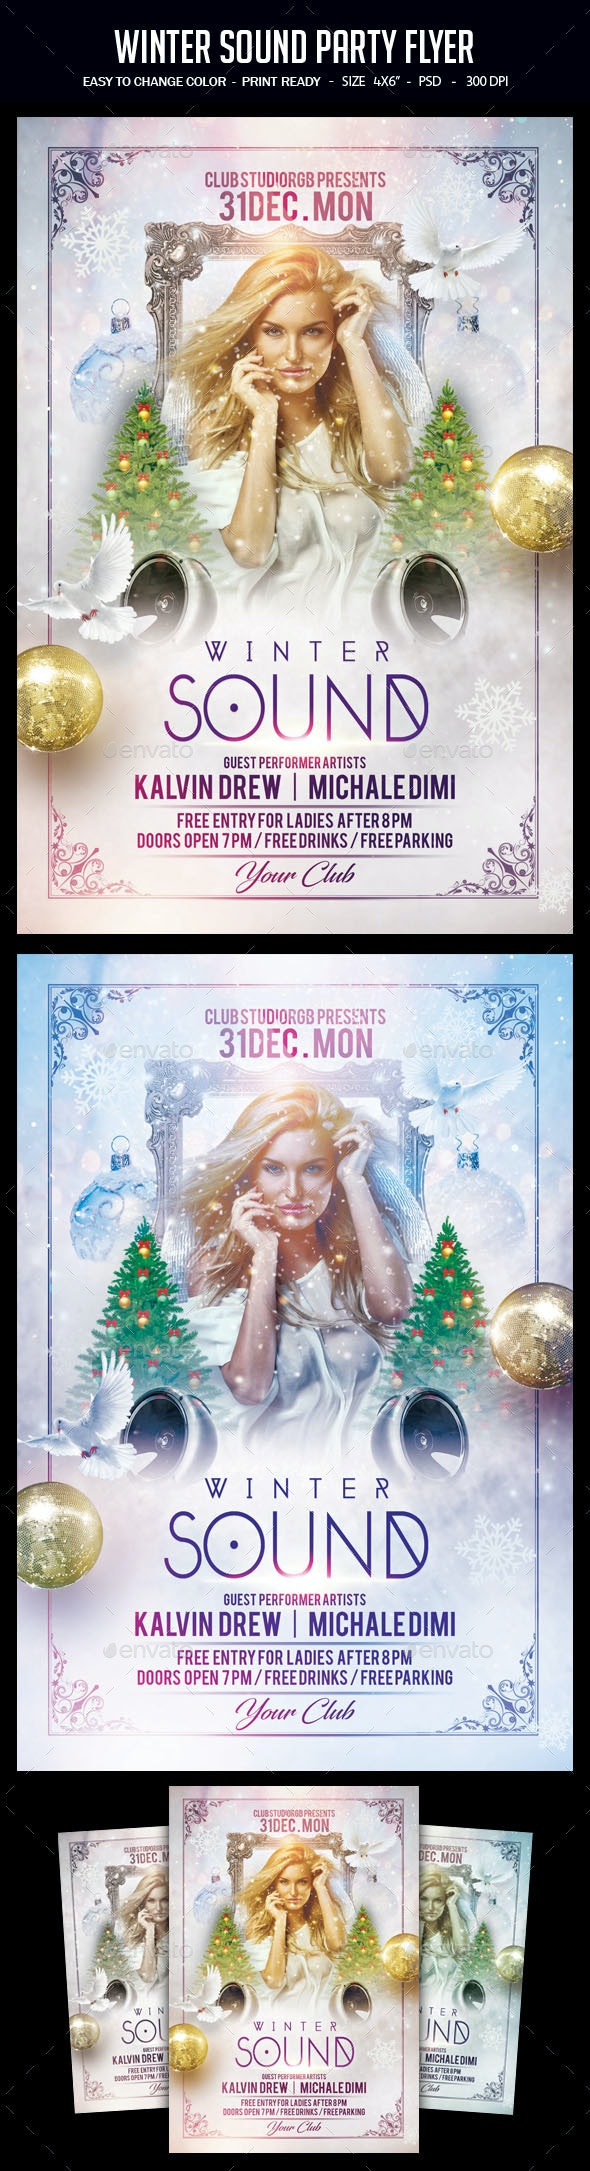 Winter Sound Party Flyer - Clubs & Parties Events